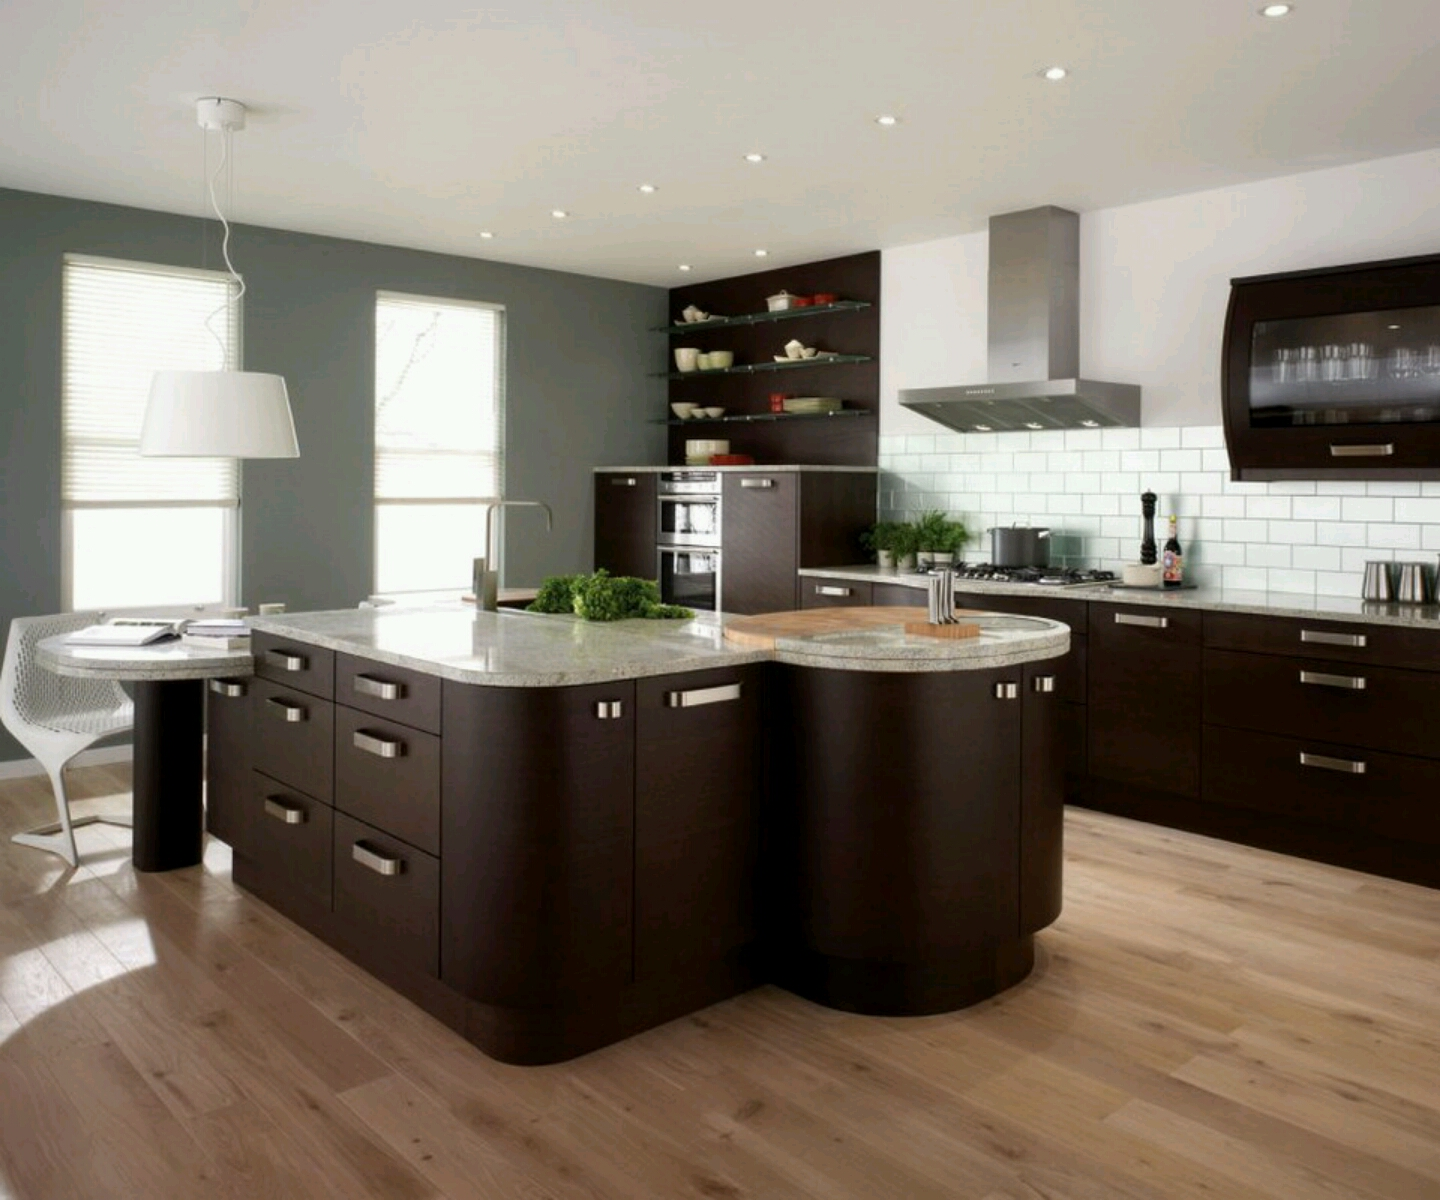 Kitchen cabinet designs best home decoration world class - Modern kitchen ideas with brown kitchen cabinets ...